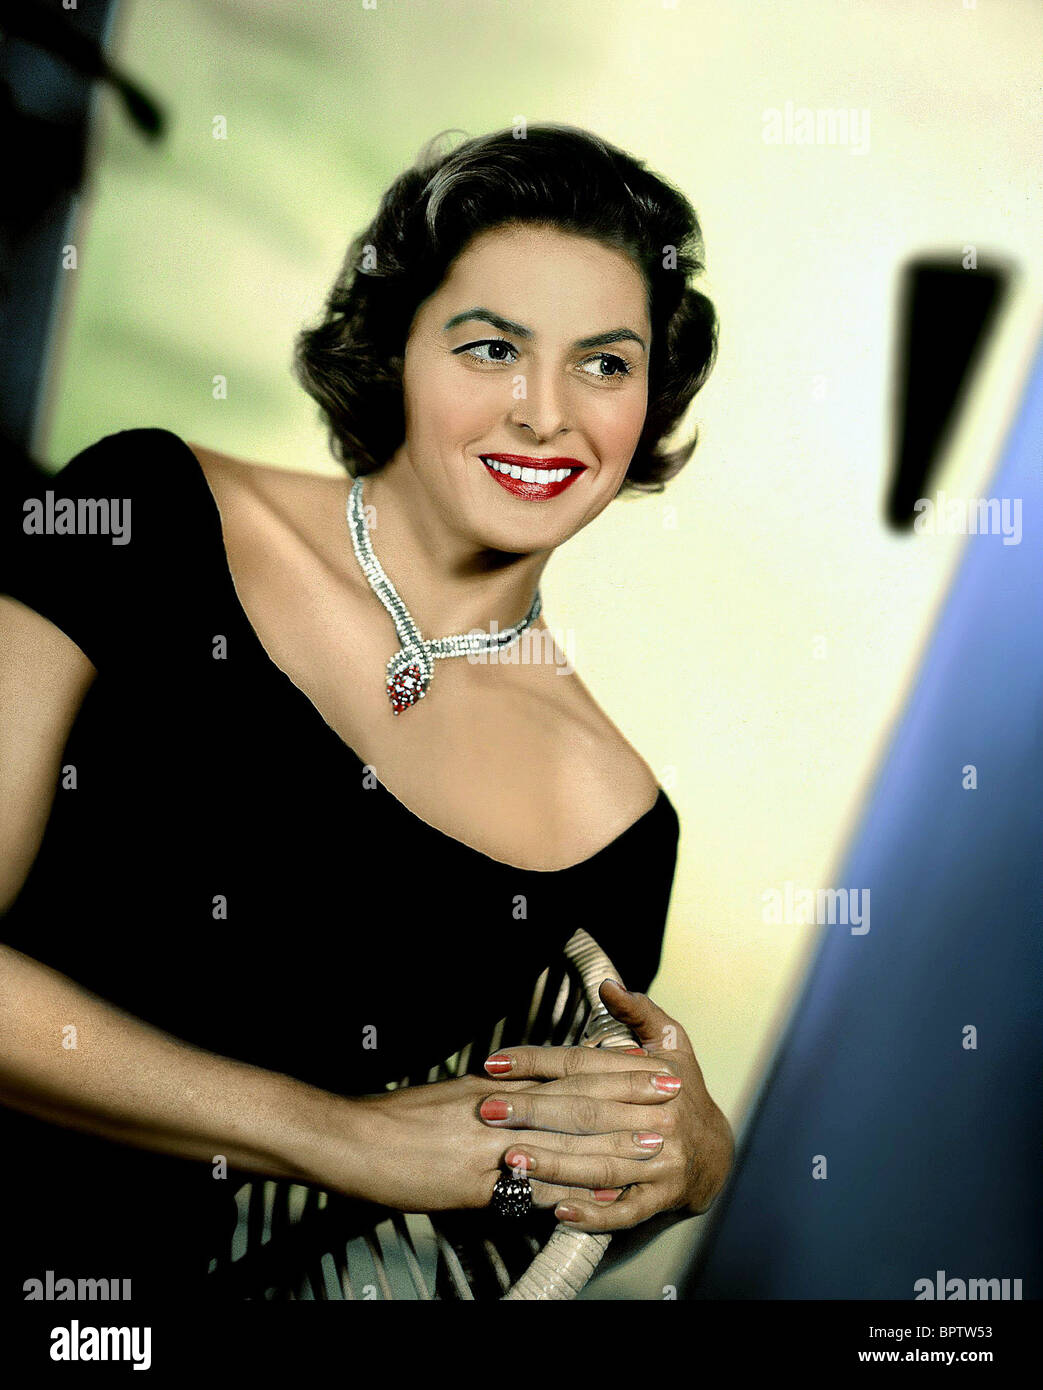 INGRID BERGMAN ACTRESS (1956) - Stock Image